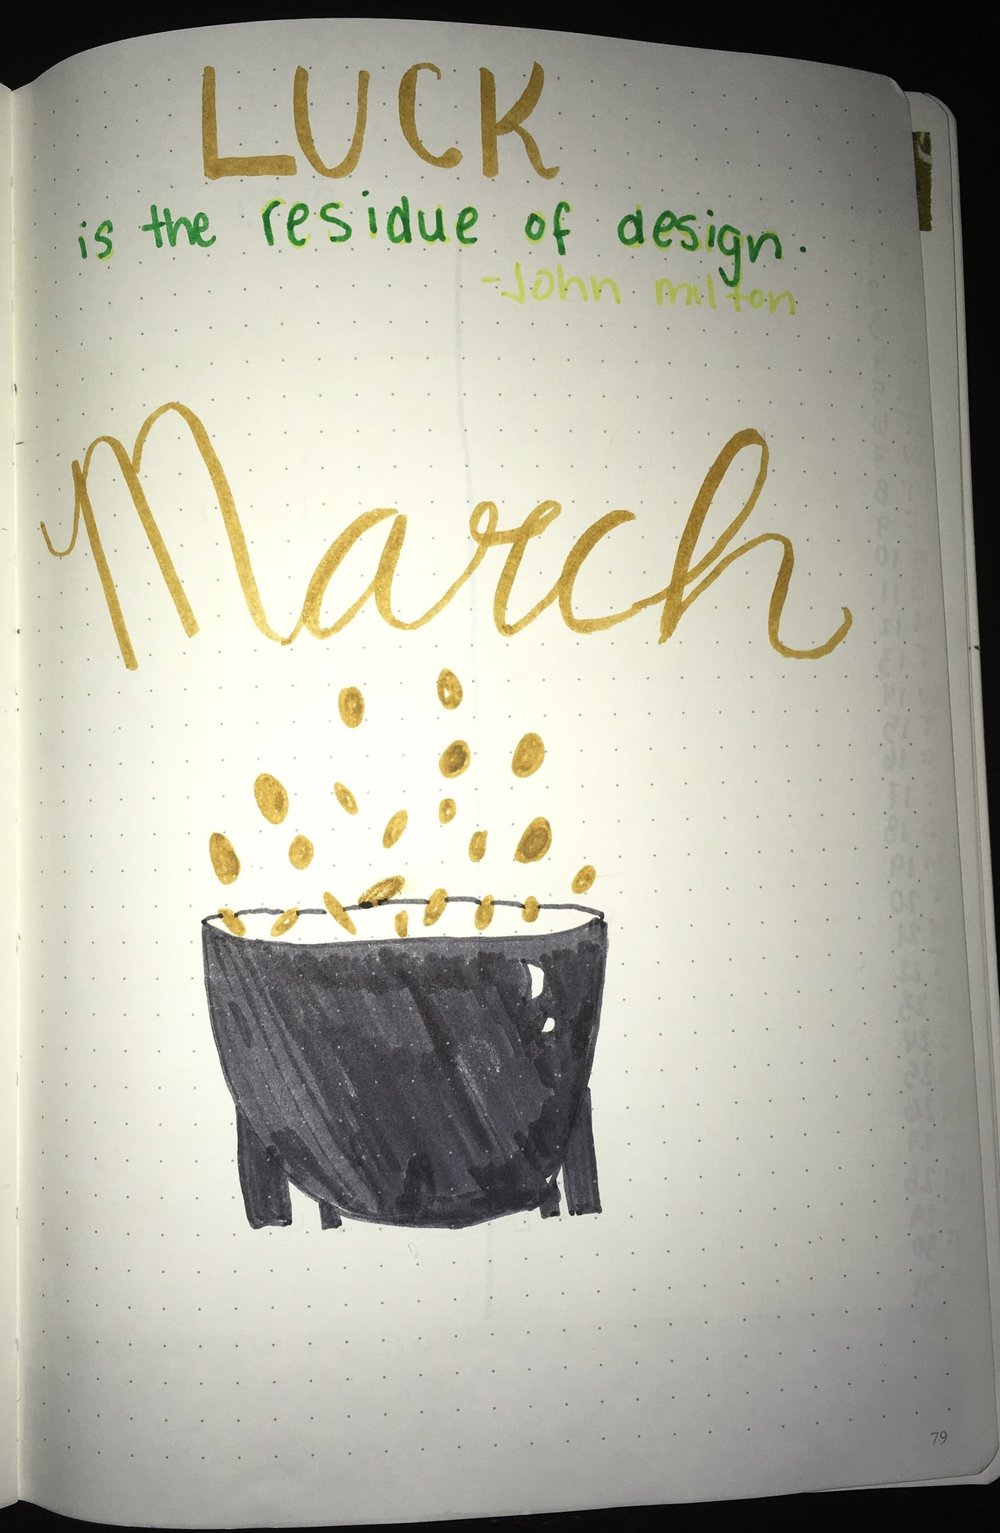 bullet journal march cover page.jpg